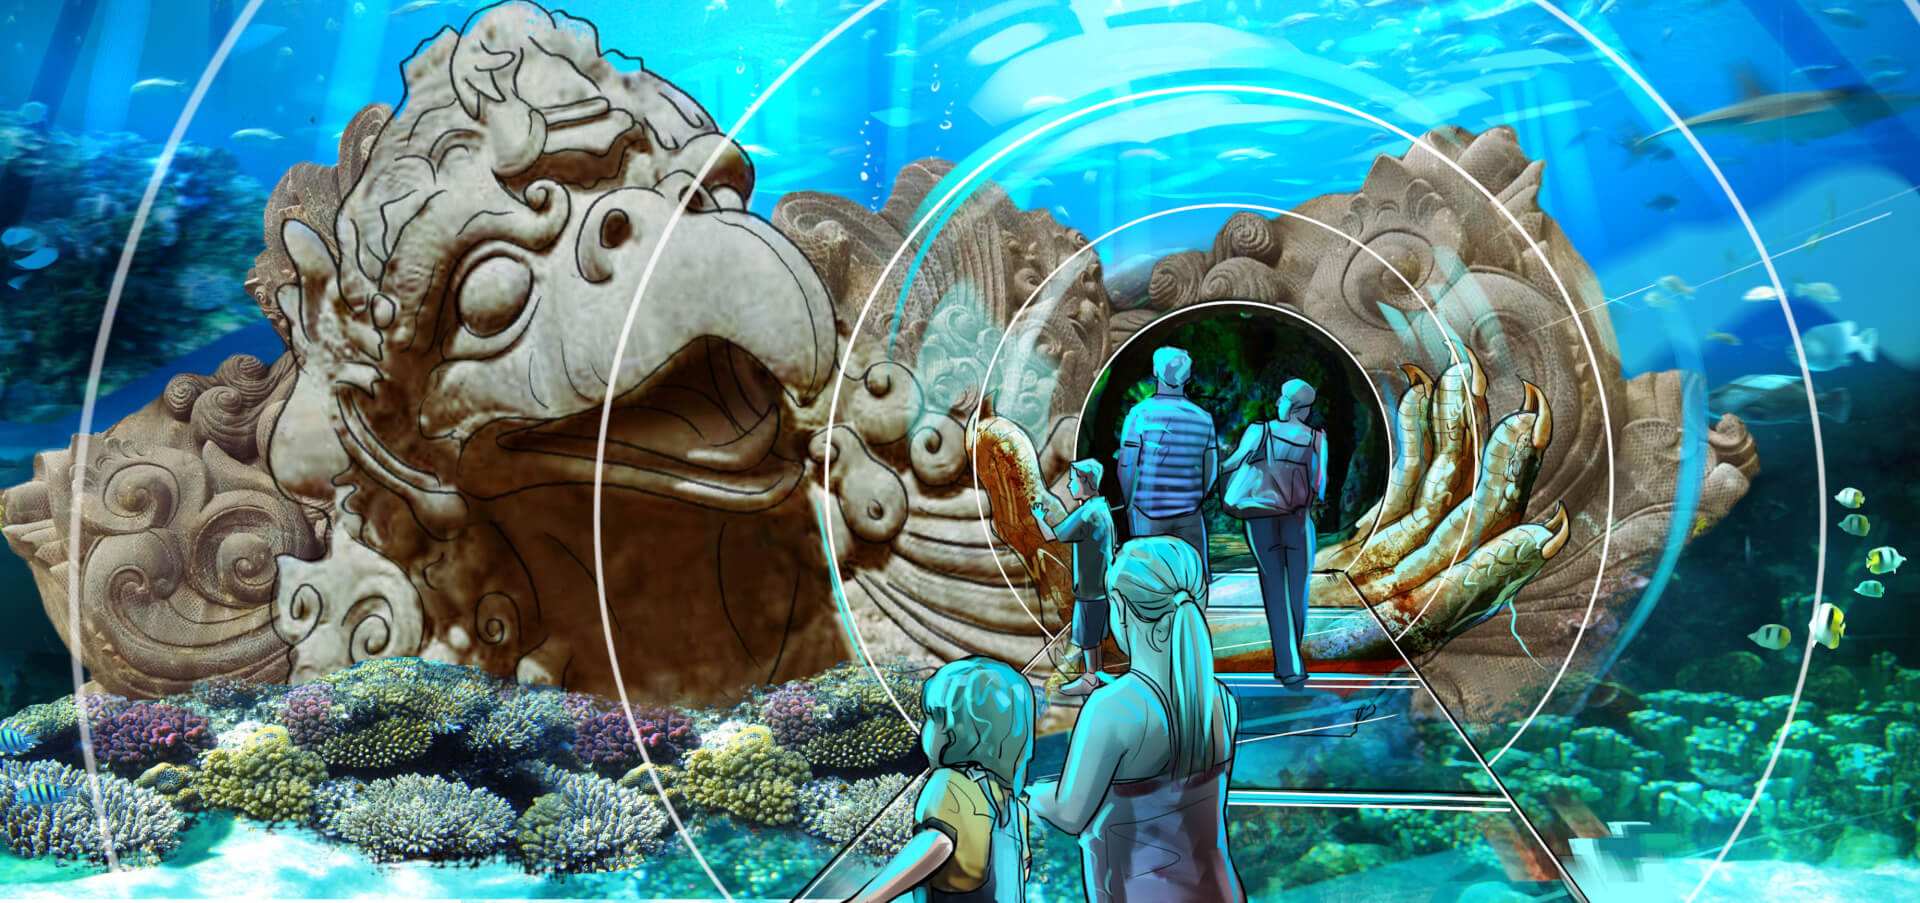 The Orlando Eye Madame Tussauds Sea Life Aquarium To